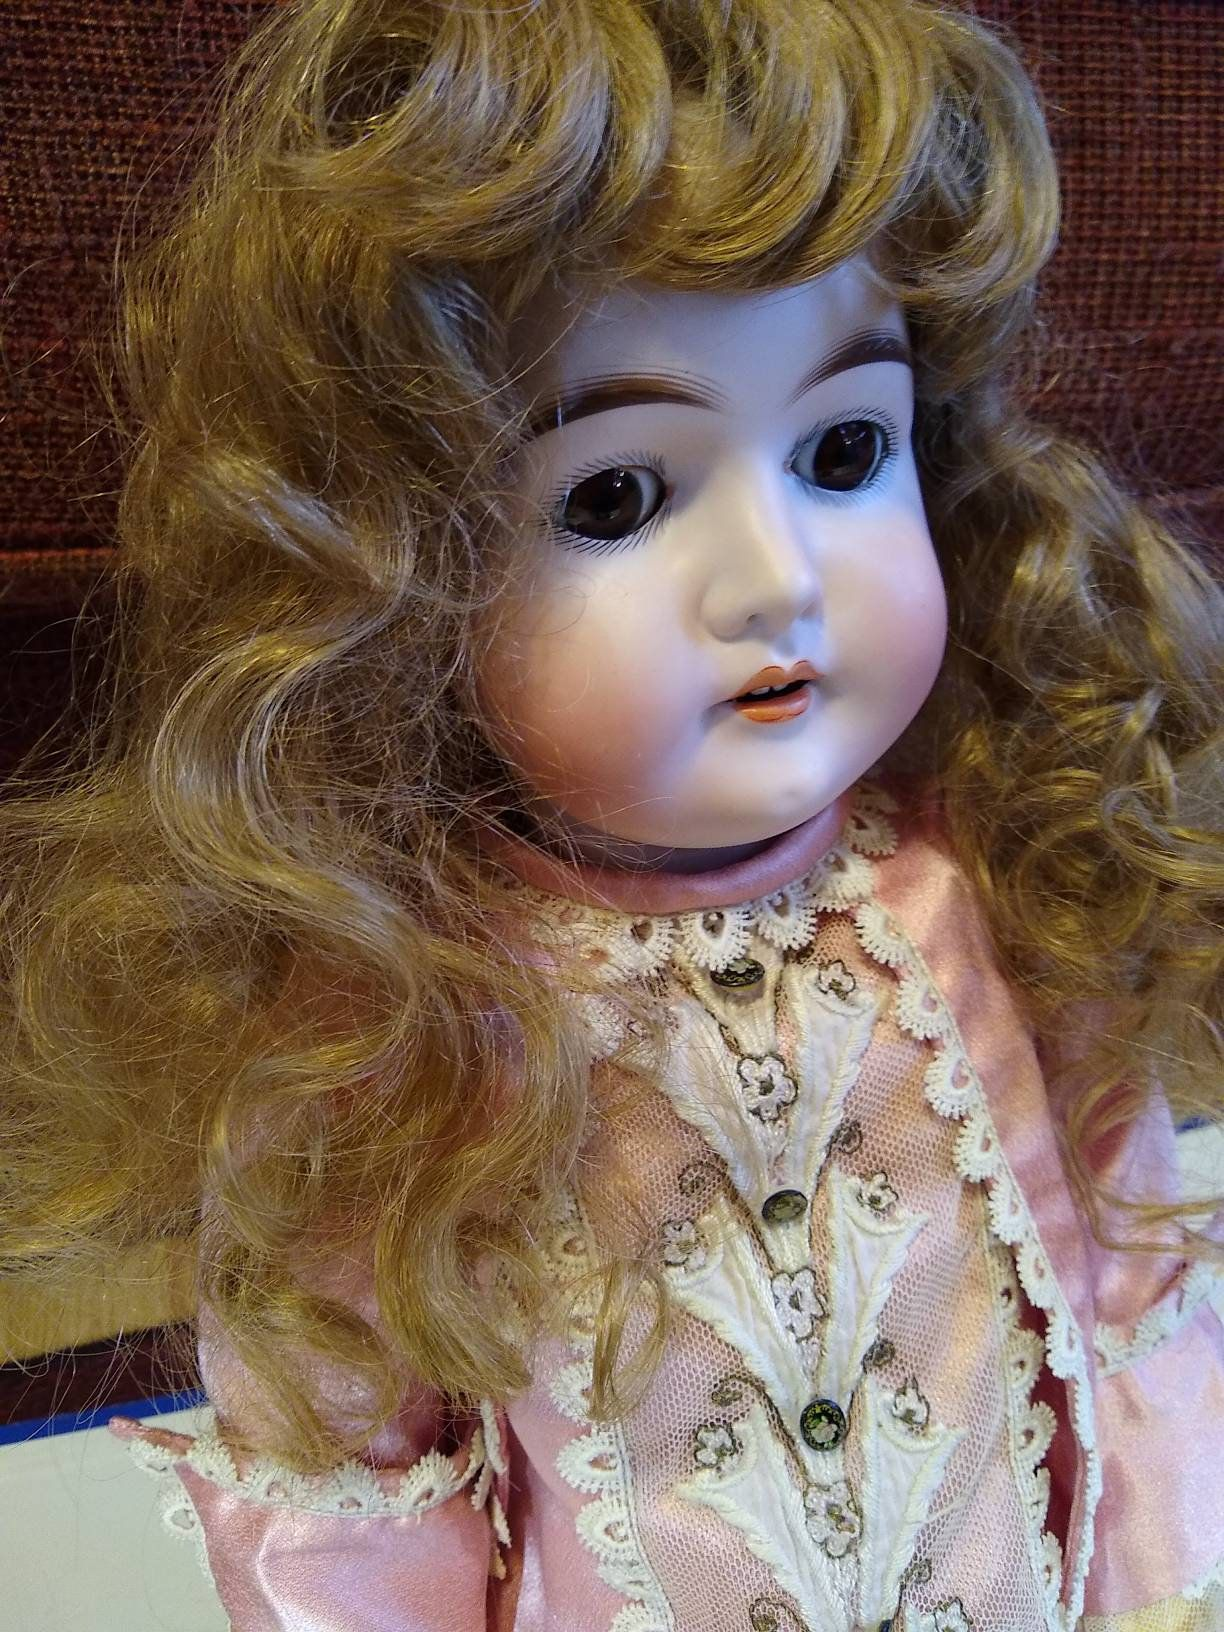 Cleaning Doll Hair Or Doll Wig Cleansing Synthetic Hair And Yarn Hair Doll Hair Doll Wigs Synthetic Hair